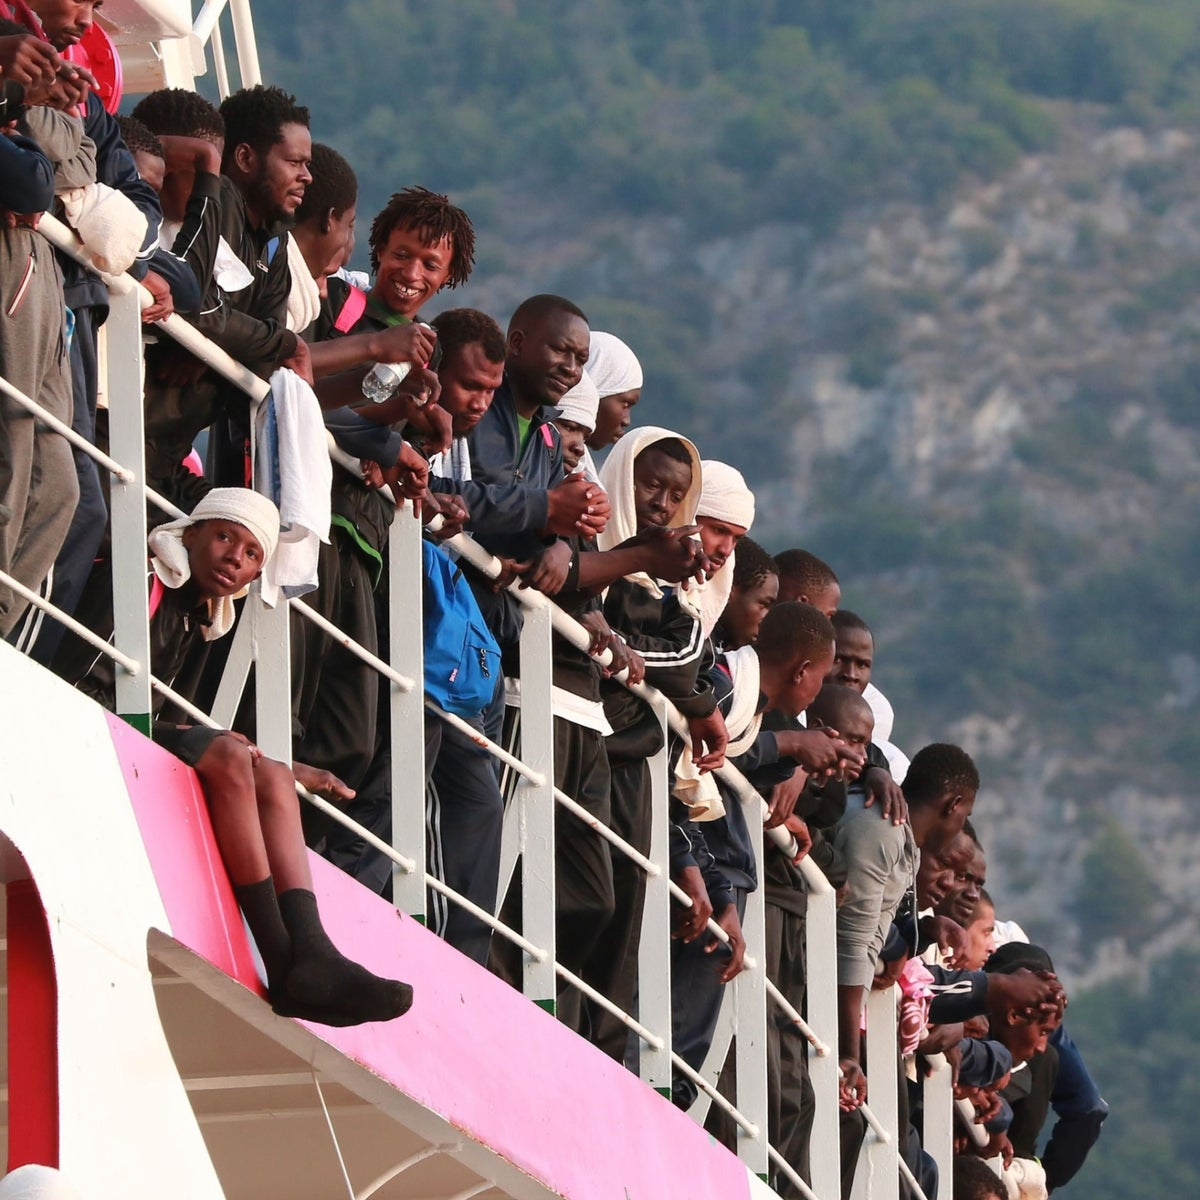 The Italian rescue ship Vos Prudence, run by NGO Doctors Without Borders, arriving in the port of Salerno carrying 935 migrants, July 14, 2017.